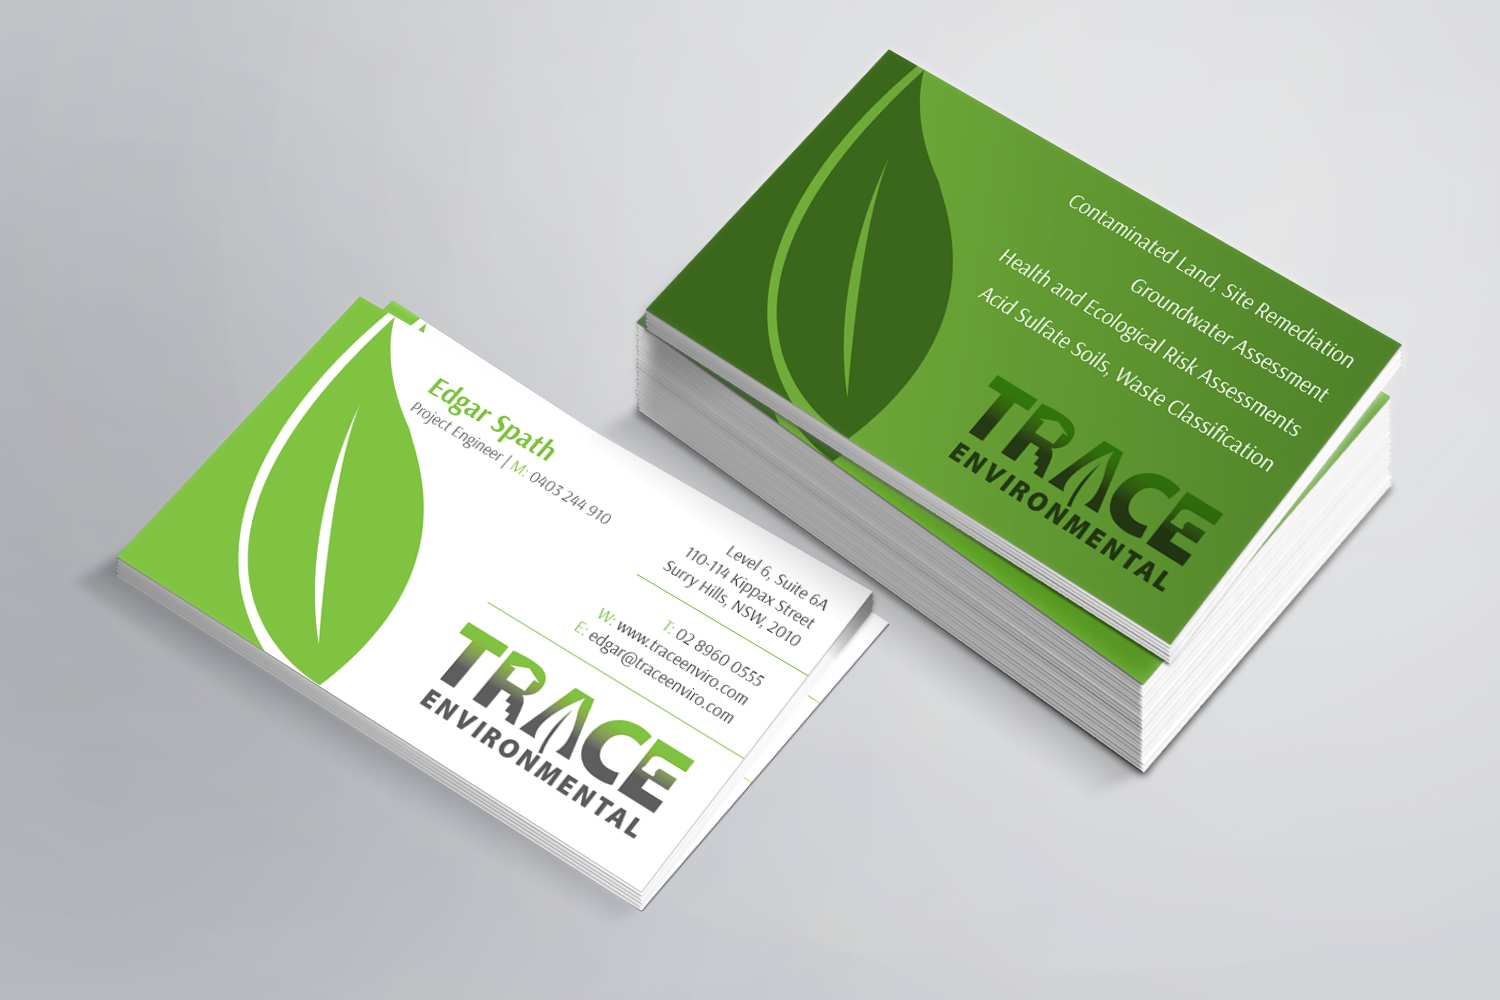 Modern professional business business card design for trace business card design by kreative fingers for trace environmental design 12714987 colourmoves